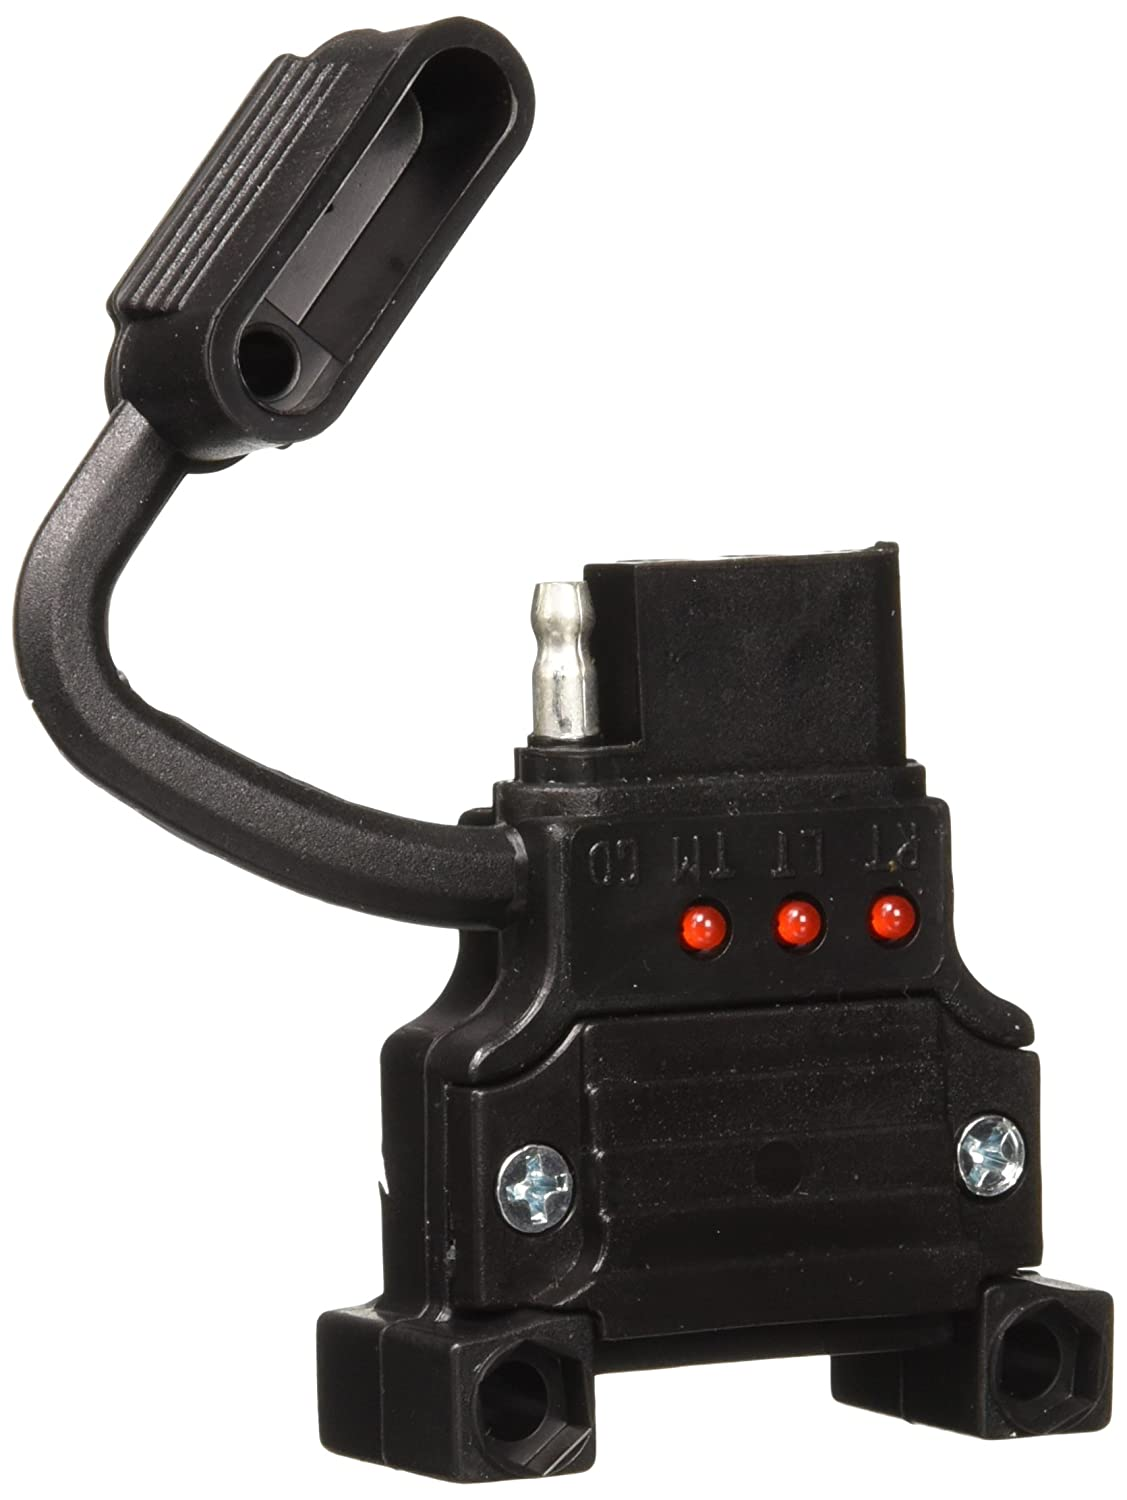 Hopkins 48190 Endurance Quick Fix Vehicle Side 4 Flat Towpower 4wire Professional 4way Includes Bothnb Ends Connector Automotive